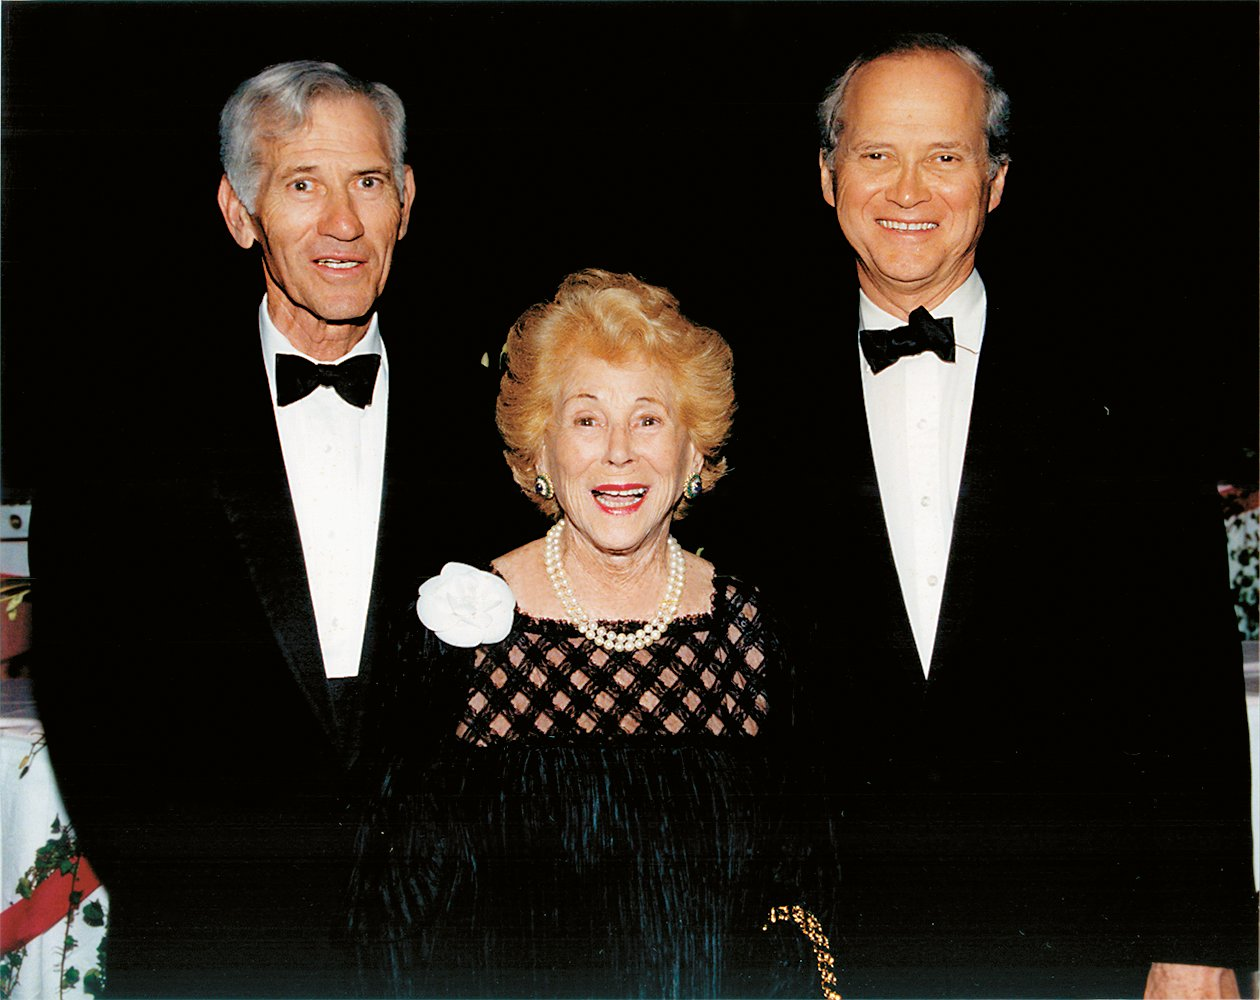 Joan with sons Richard (left) and Bruce (right), both of whom held executive positions in Clairol.